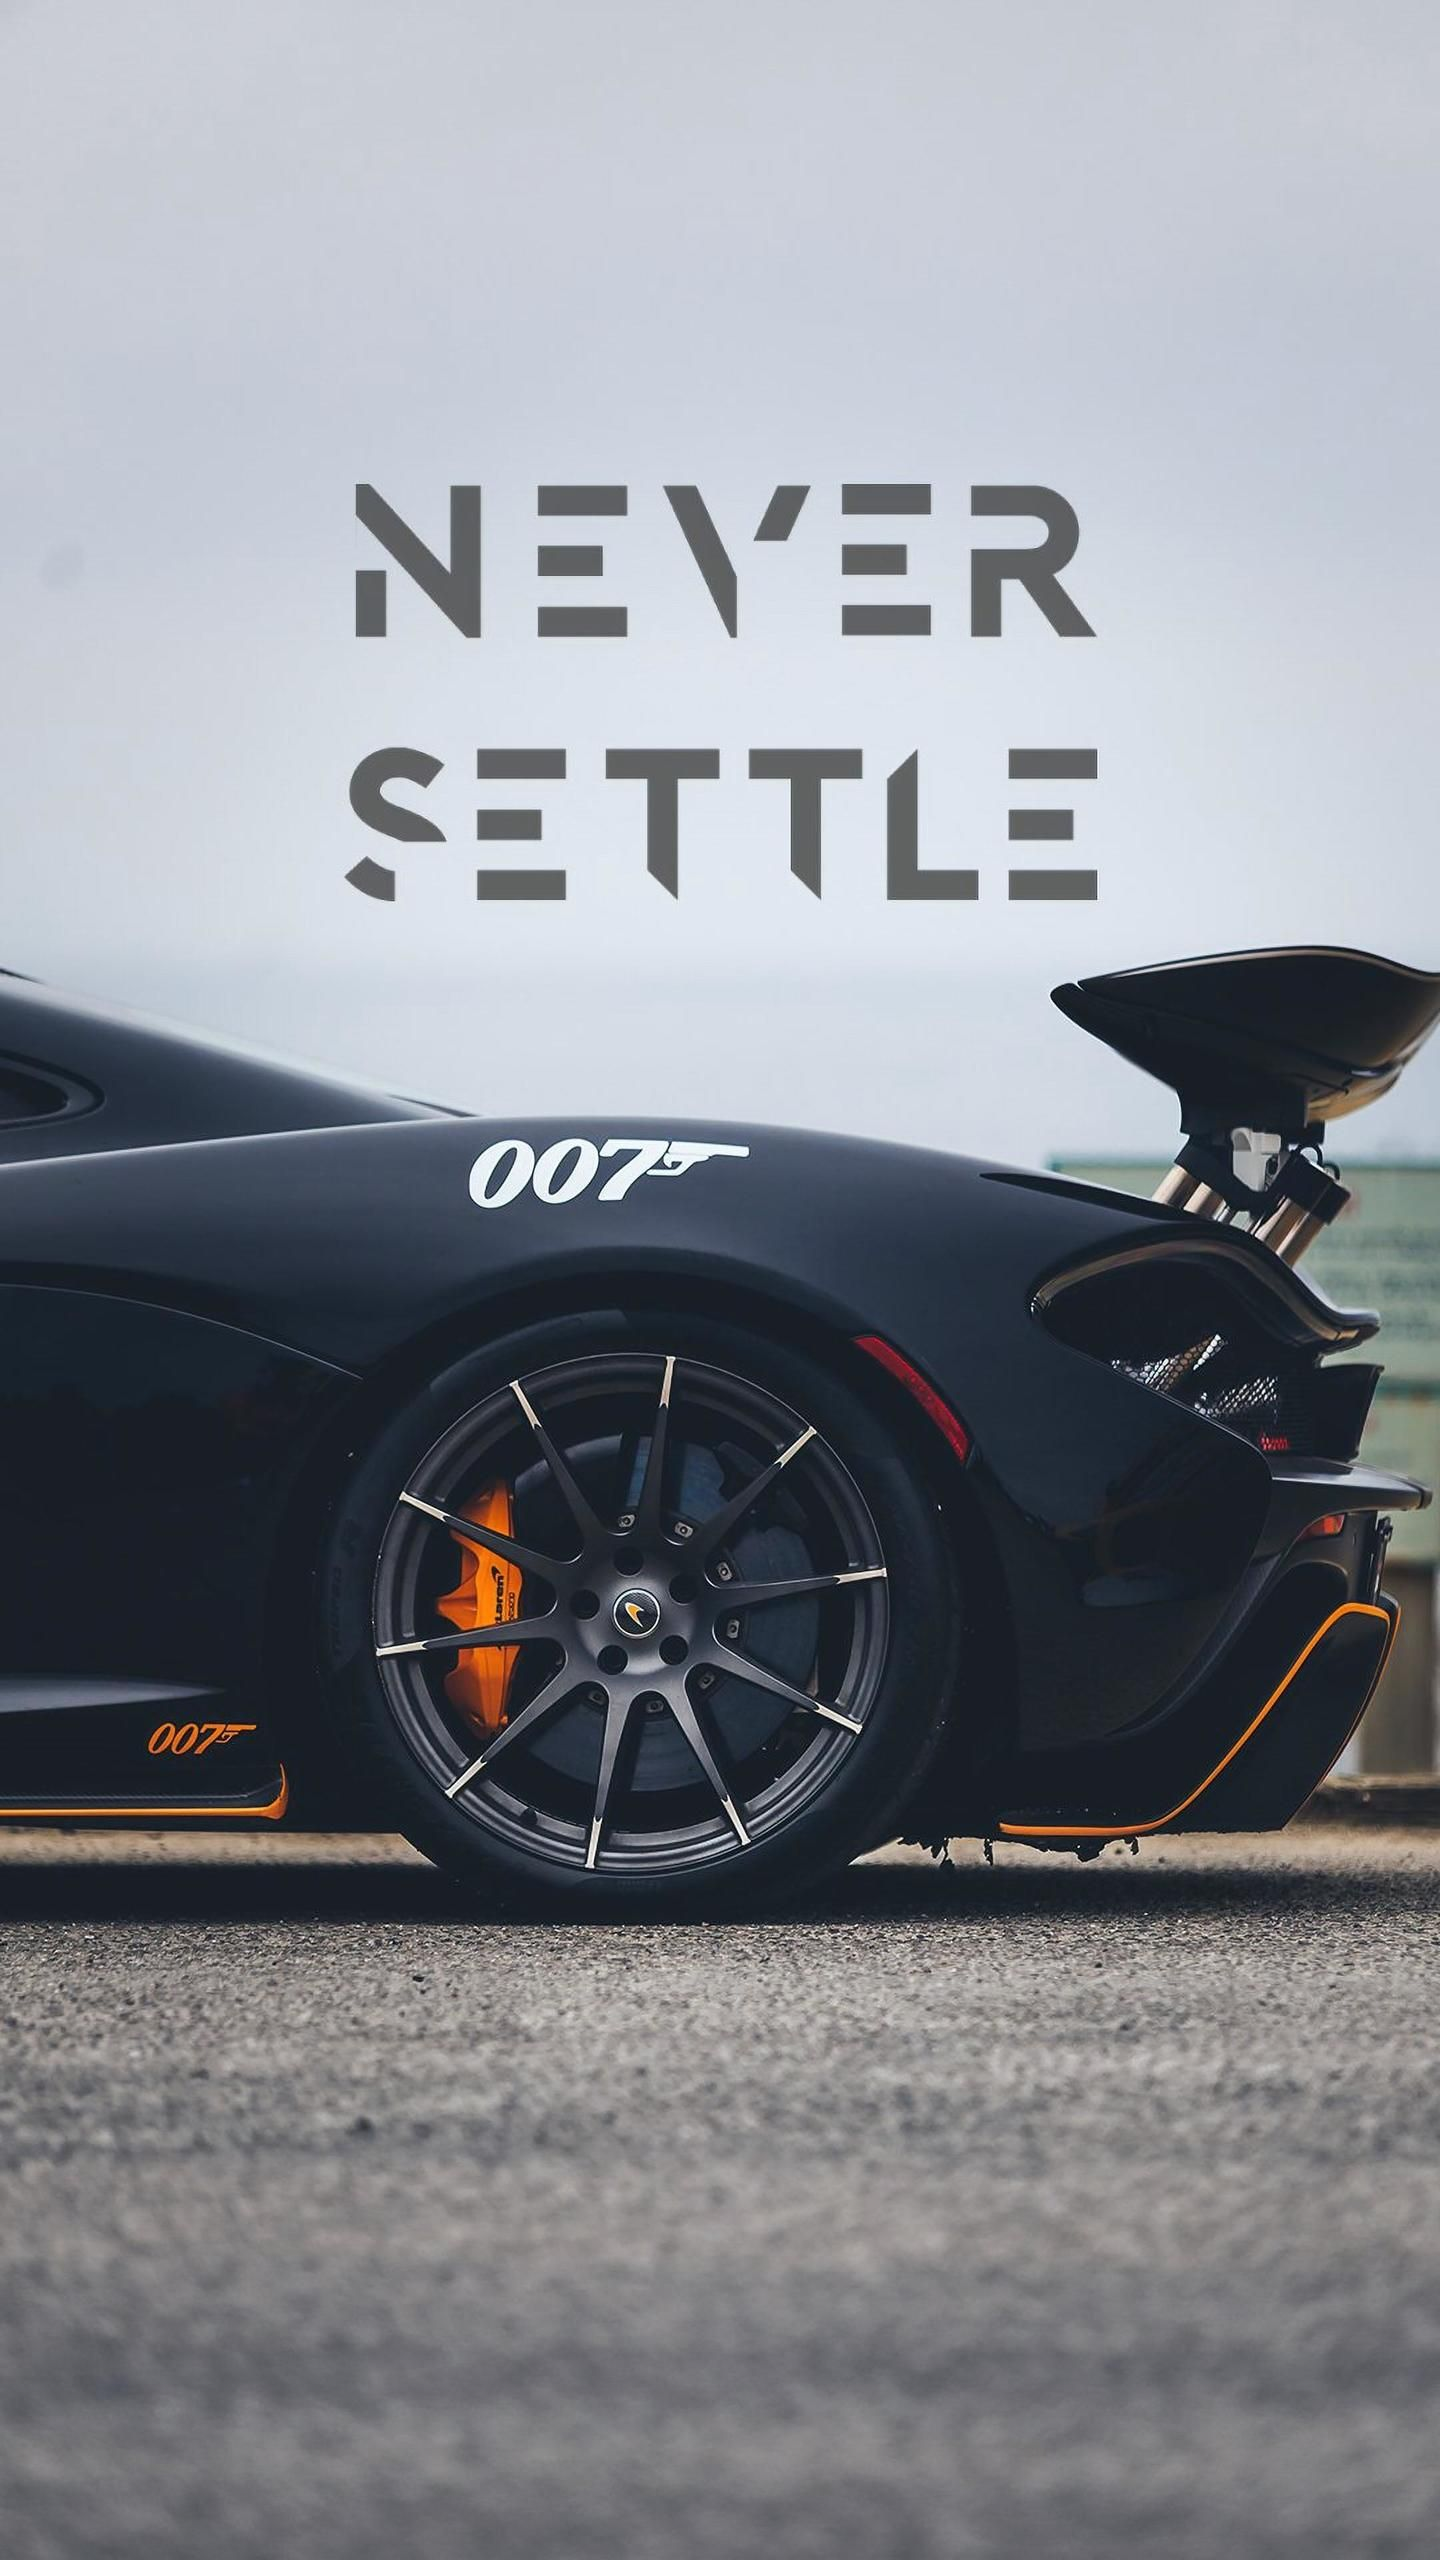 Skbn Never Settle Car Iphone Wallpaper Sports Car Wallpaper New Luxury Cars